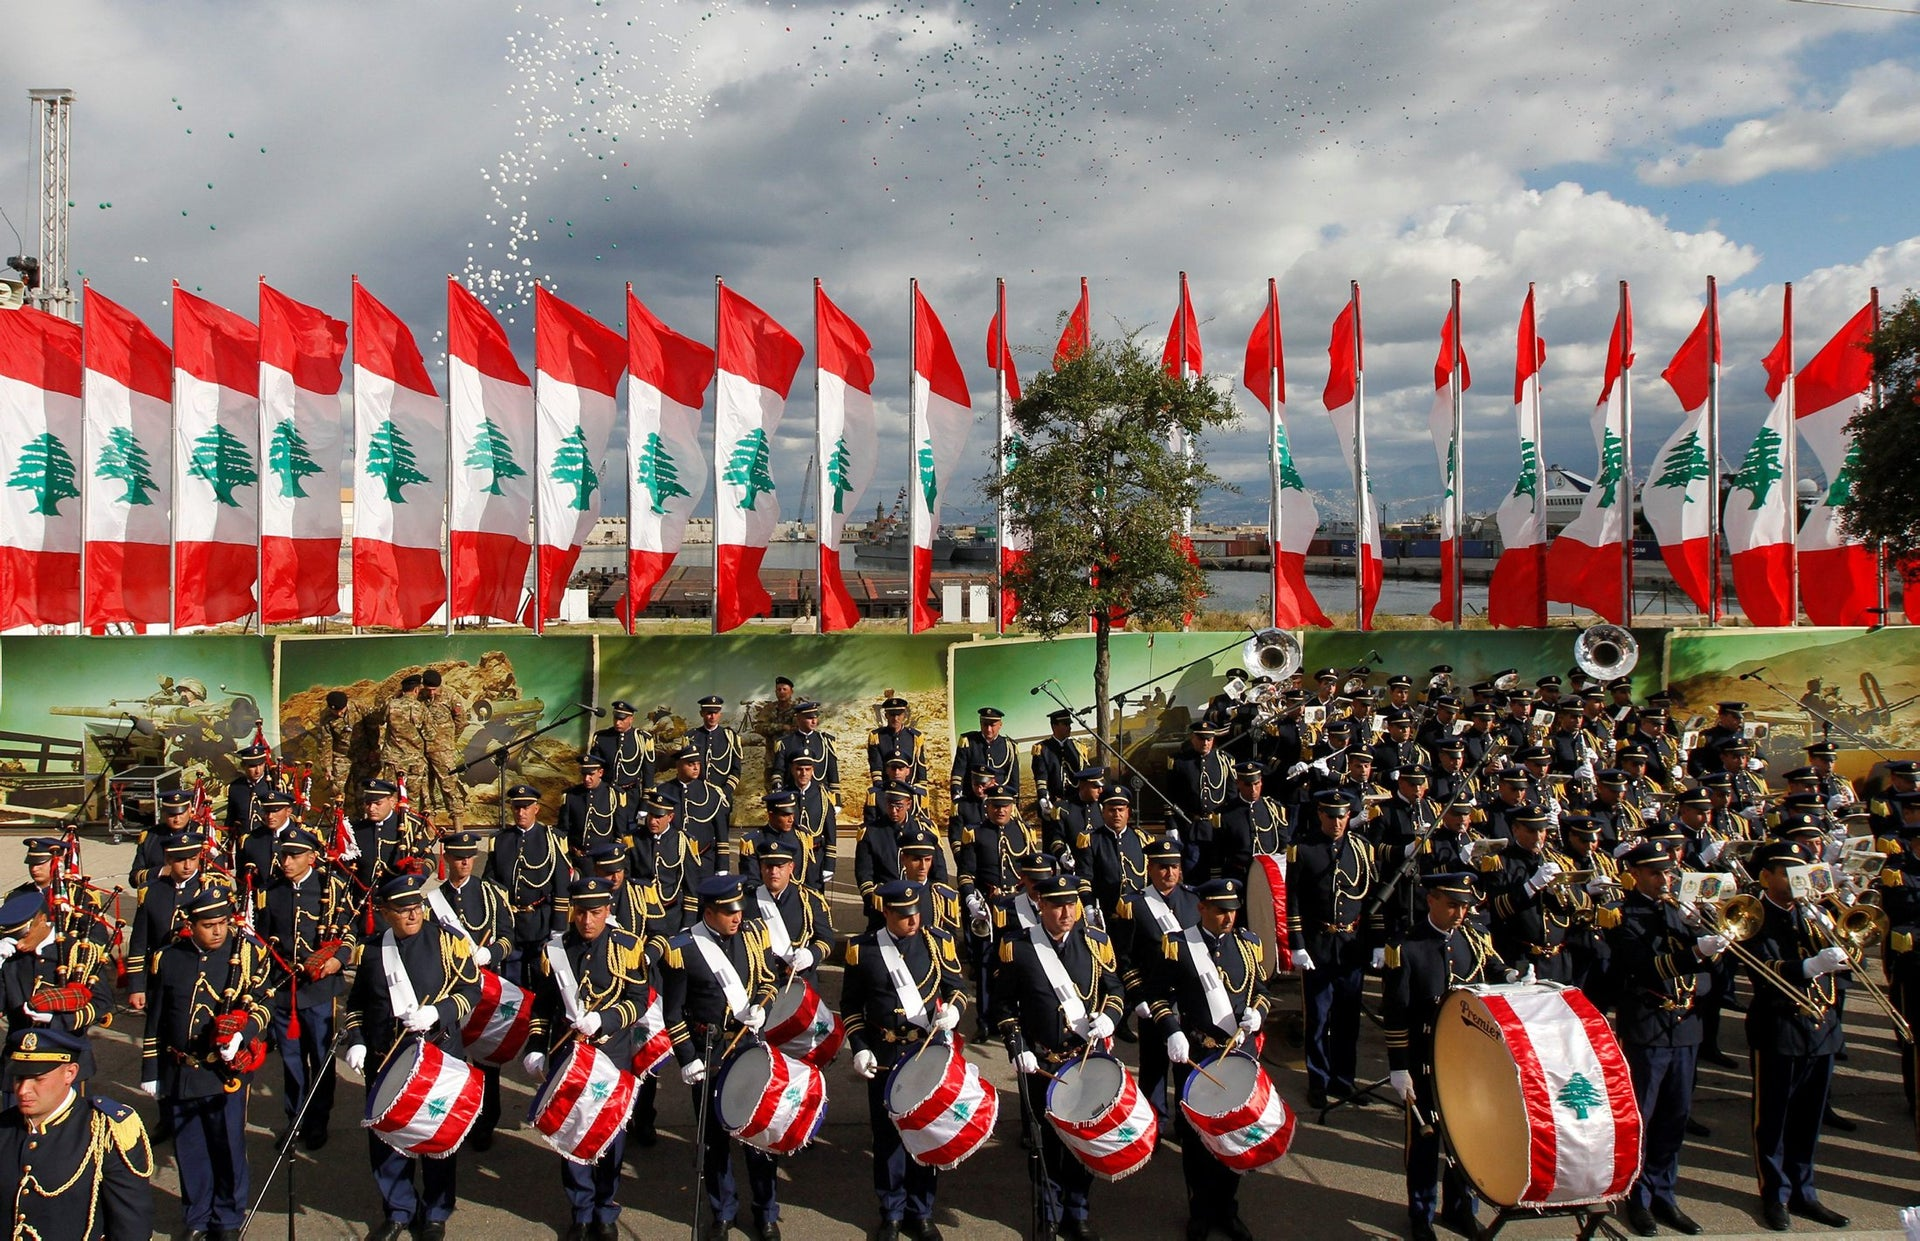 Lebanese band members take part in a military parade to celebrate the 74th anniversary of Lebanon's independence in downtown Beirut, Lebanon November 22, 2017.